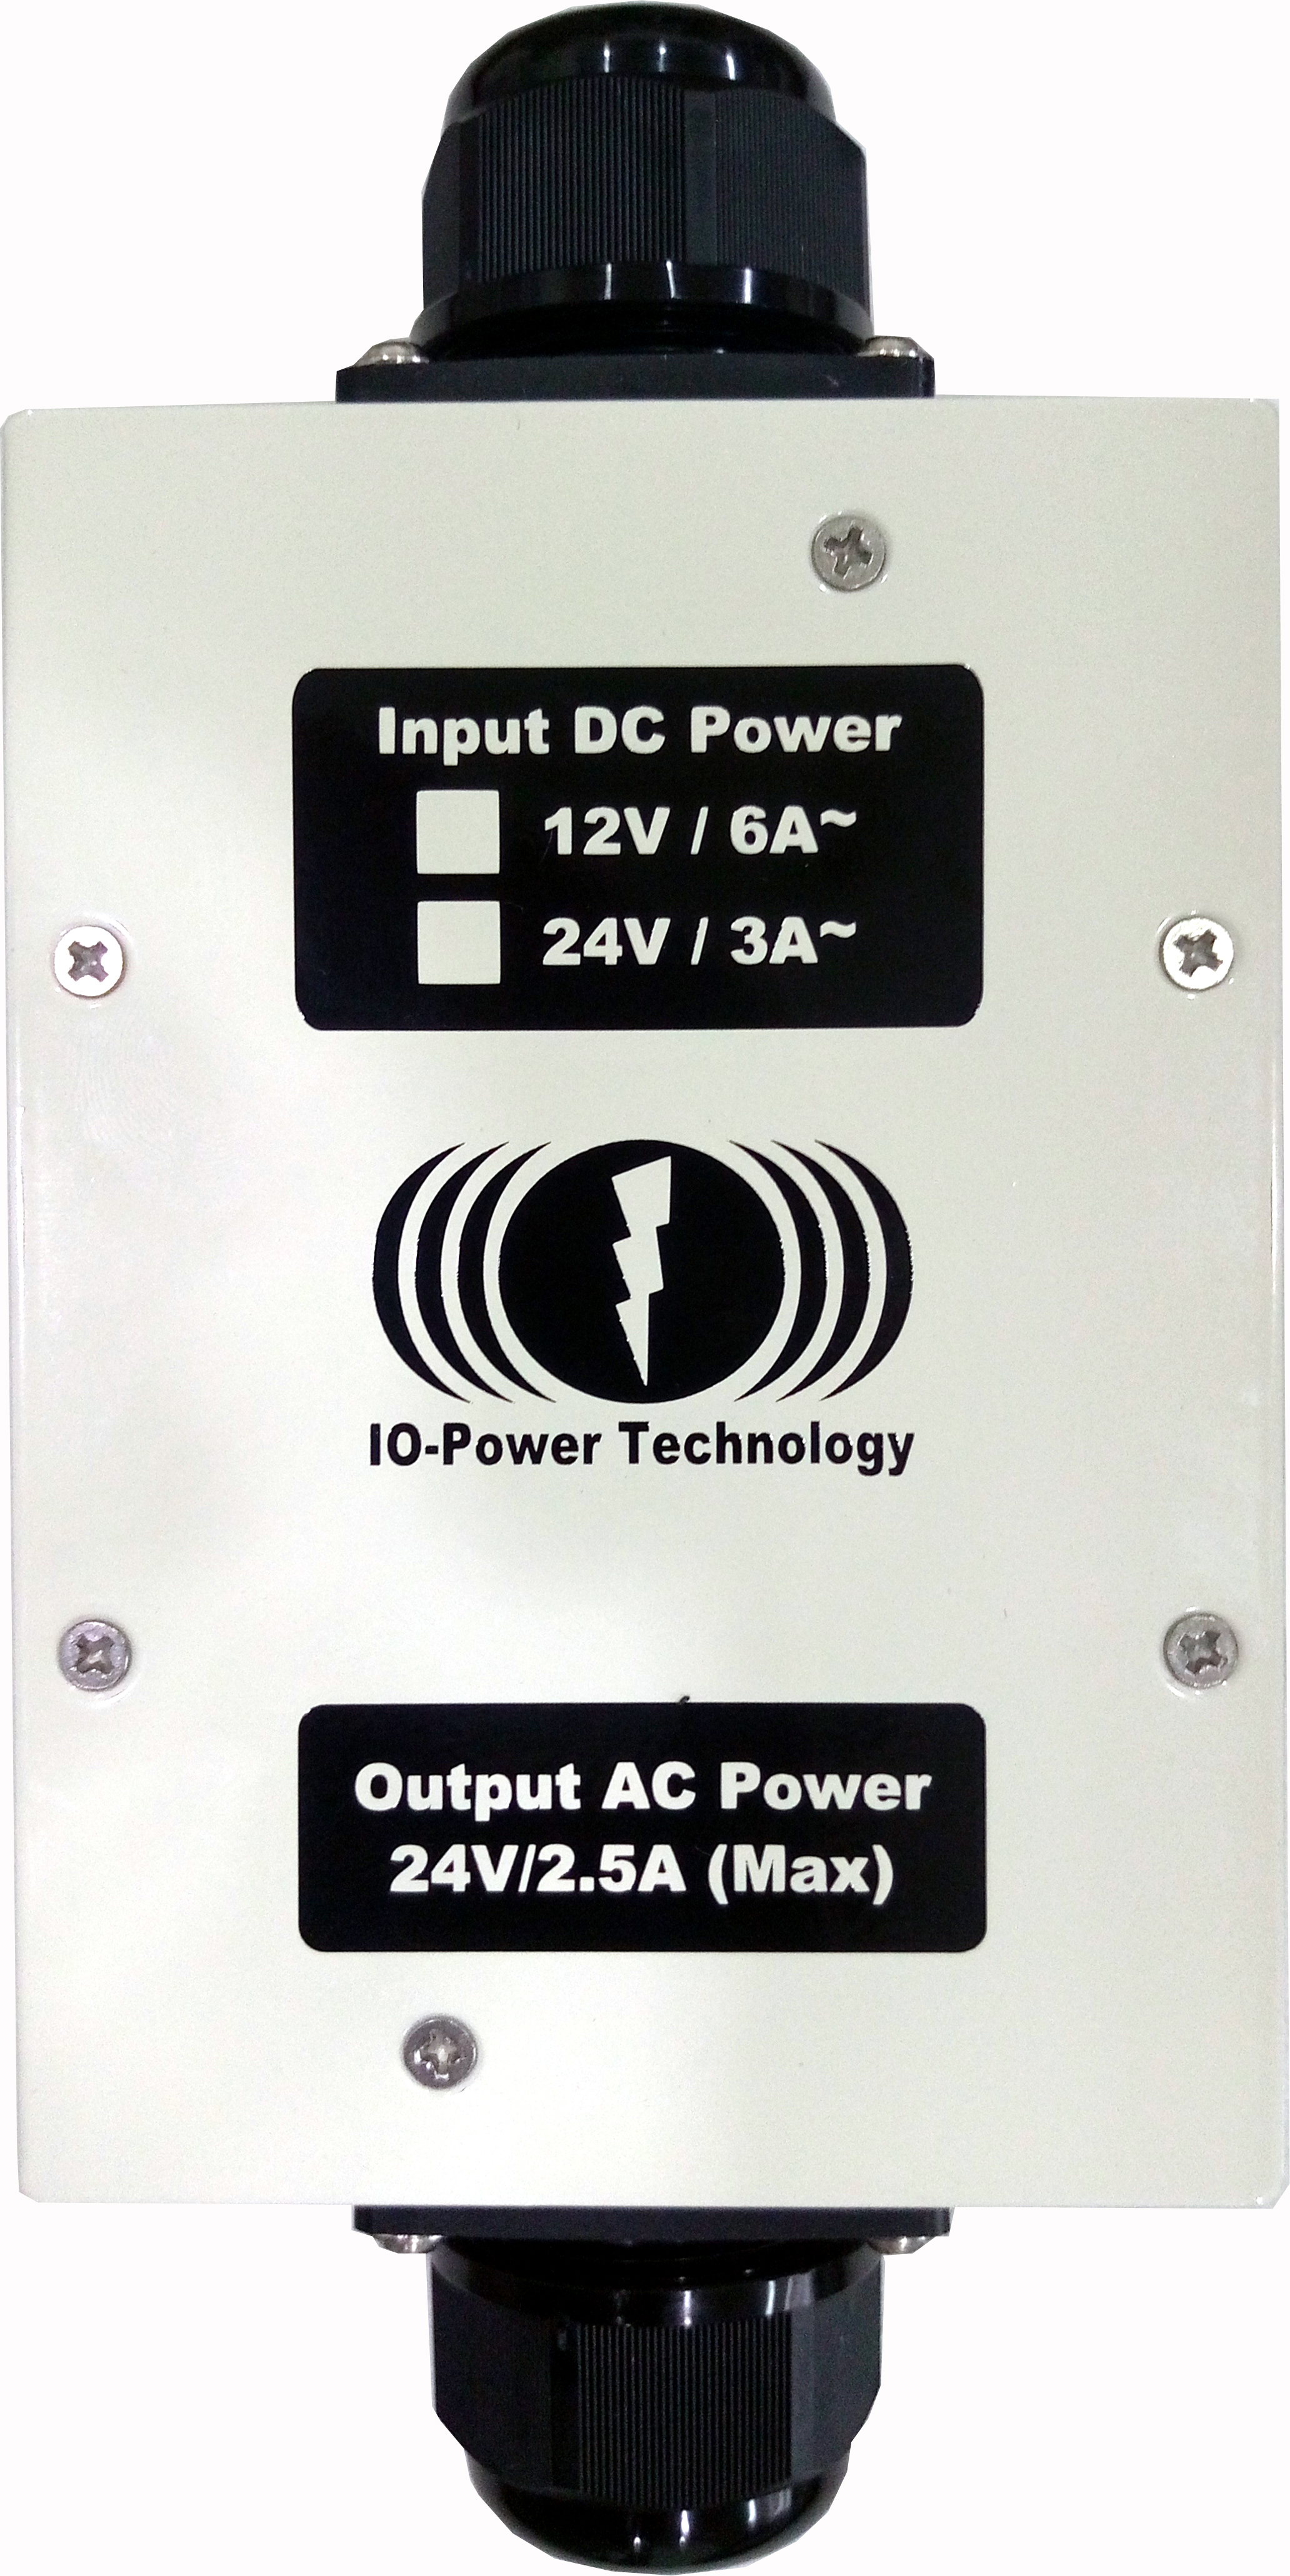 Outdoor 12vdc To 24vac Power Inverter 12v Dc Ac Converter Circuit 12 Io Iop Dapi 12242a 1 Is A Specially Designed For Speed Dome Adopting Input Which Different From The